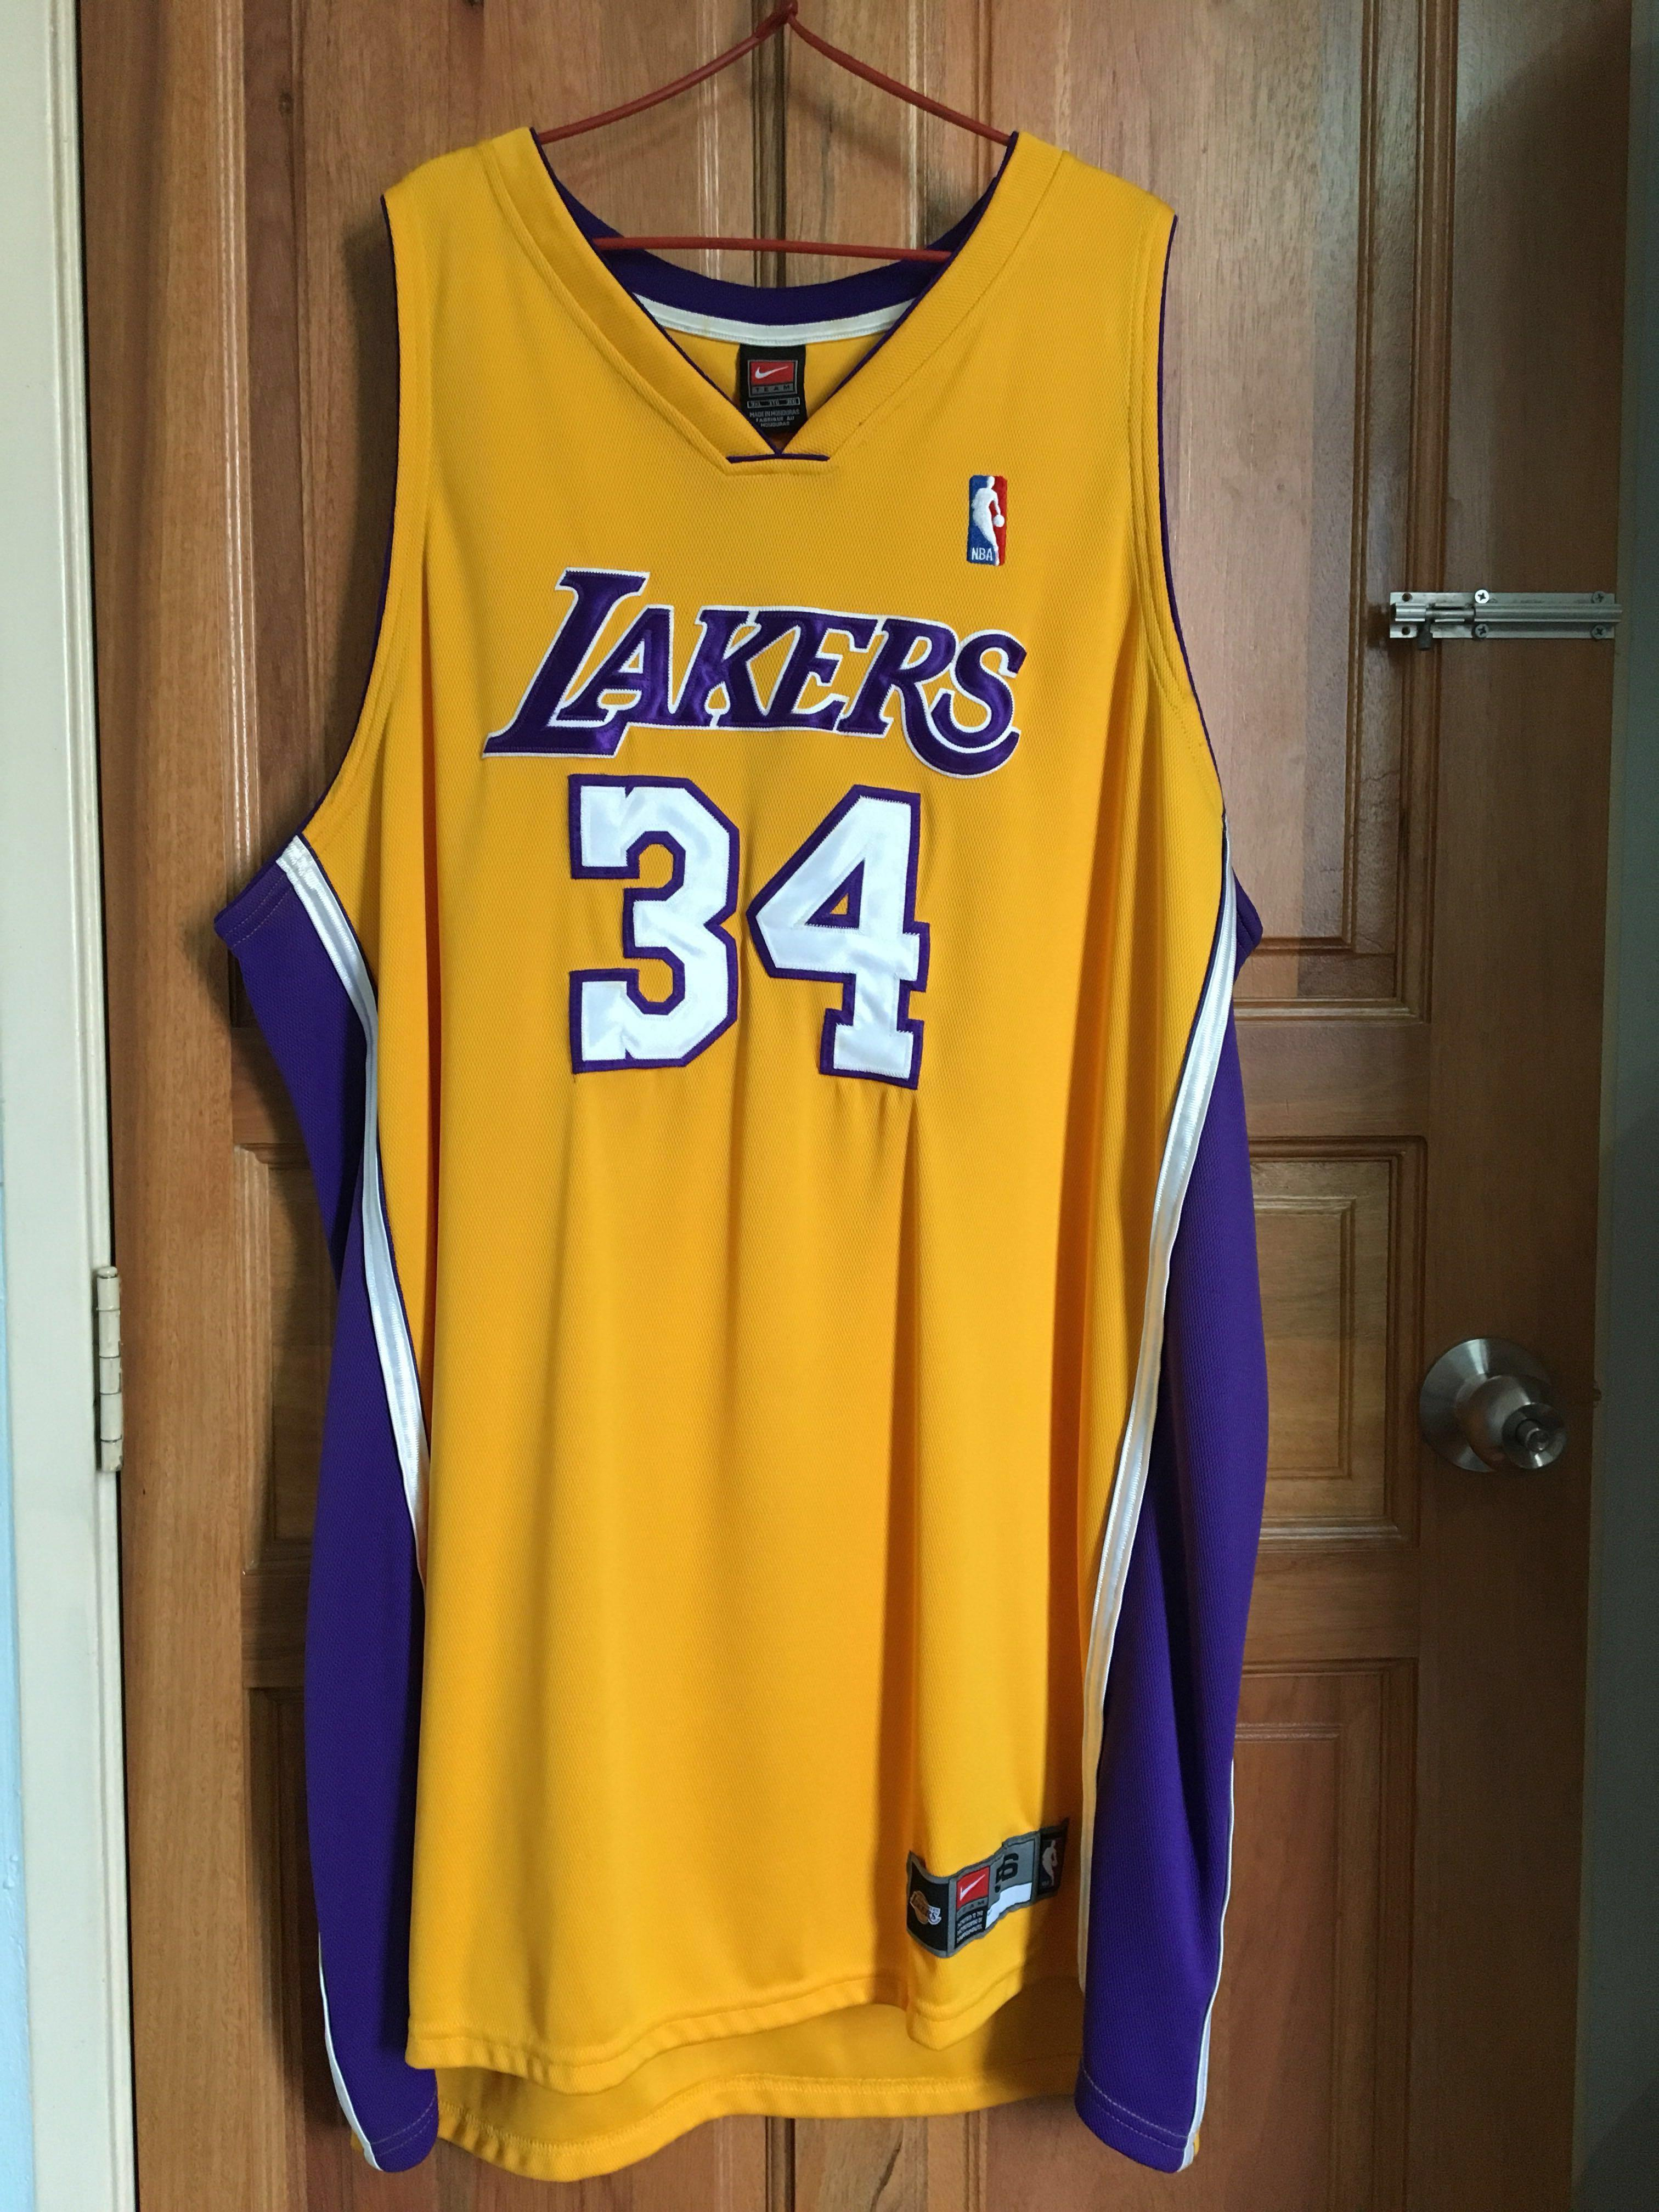 premium selection 2c694 c70a6 Nike NBA authentic Shaq Lakers jersey 3XL, Sports, Sports ...